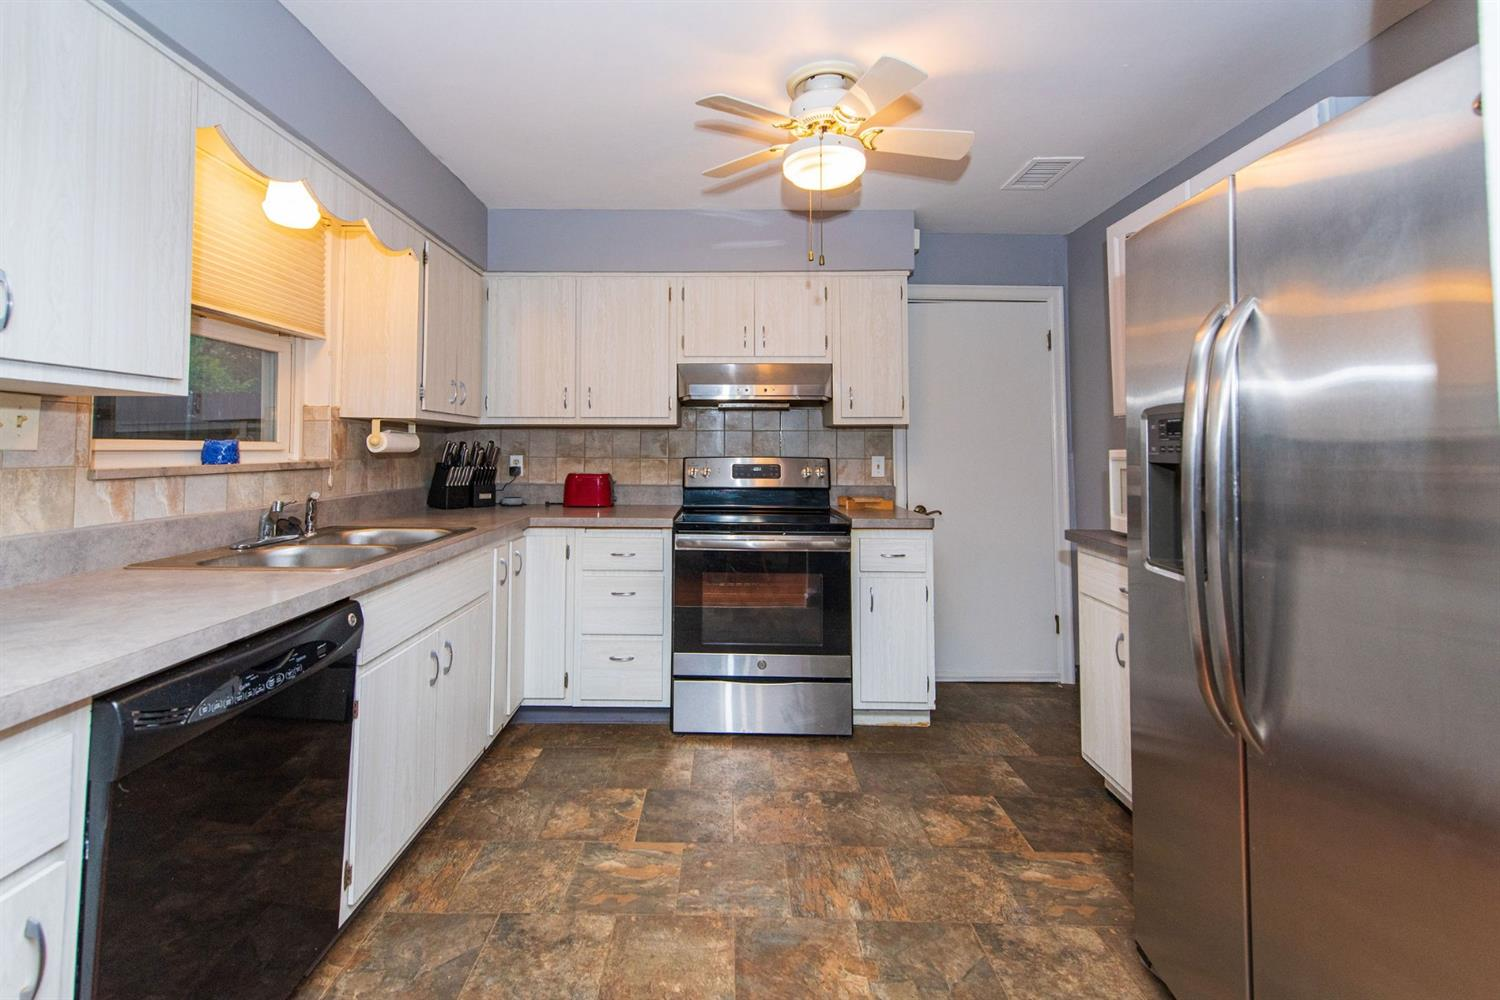 Fully equipped Kitchen with stainless steel appliances. Laundry room and attached garage off kitchen.